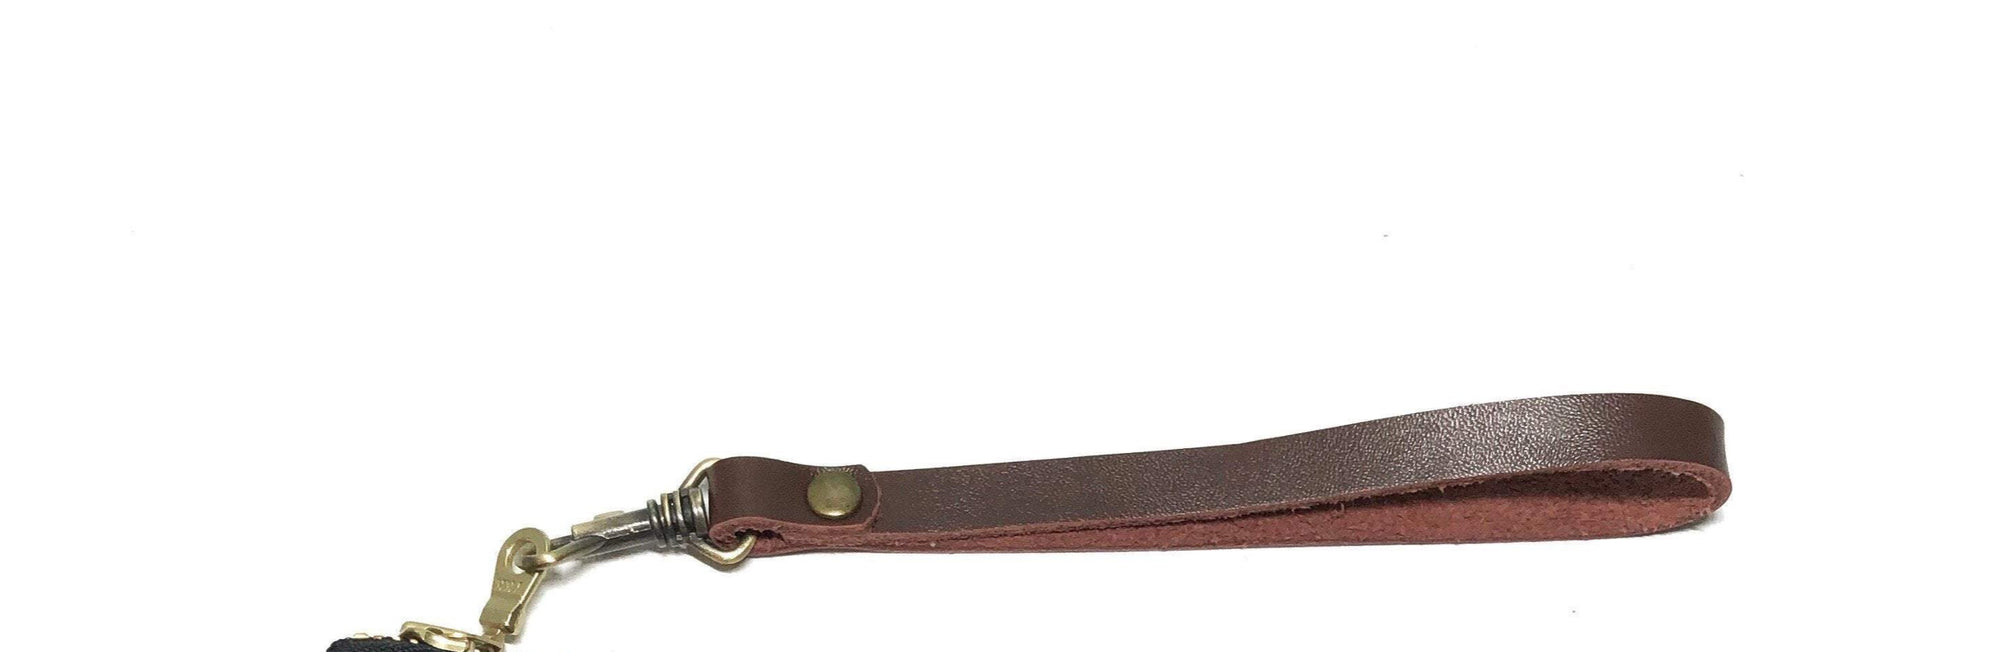 Genuine Leather Wrist Strap (Add On Only)